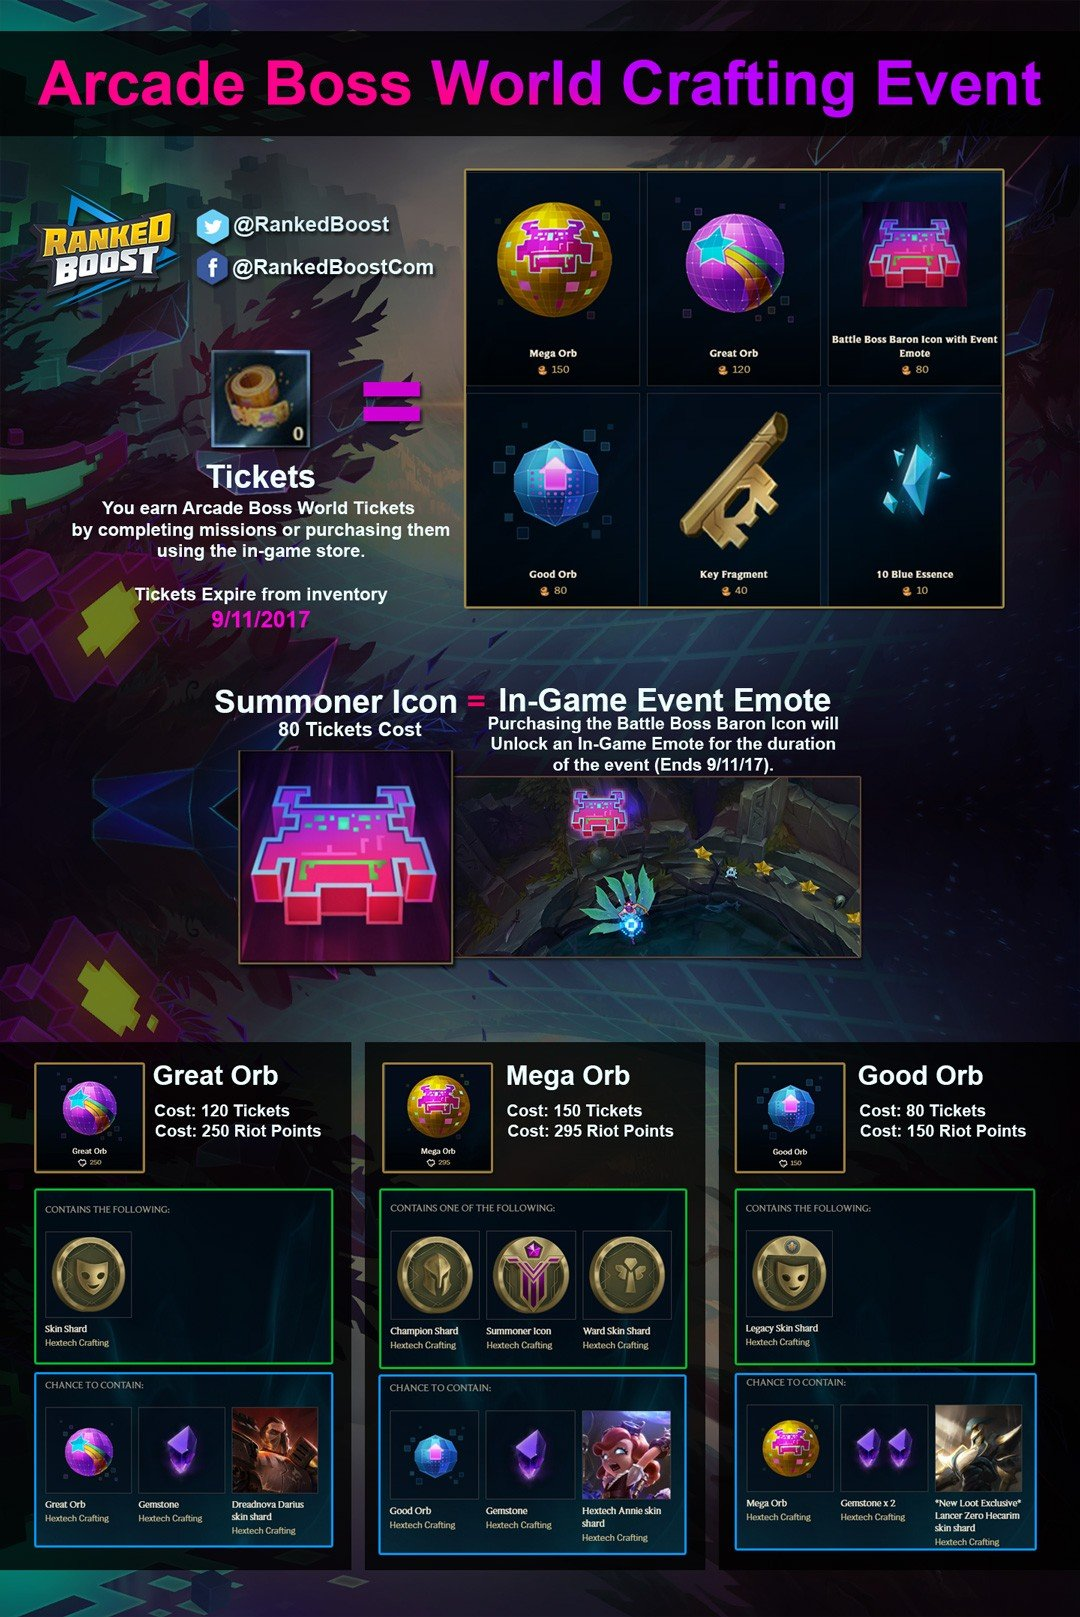 League-of-Legends-Arcade-Boss-World-Crafting-Event